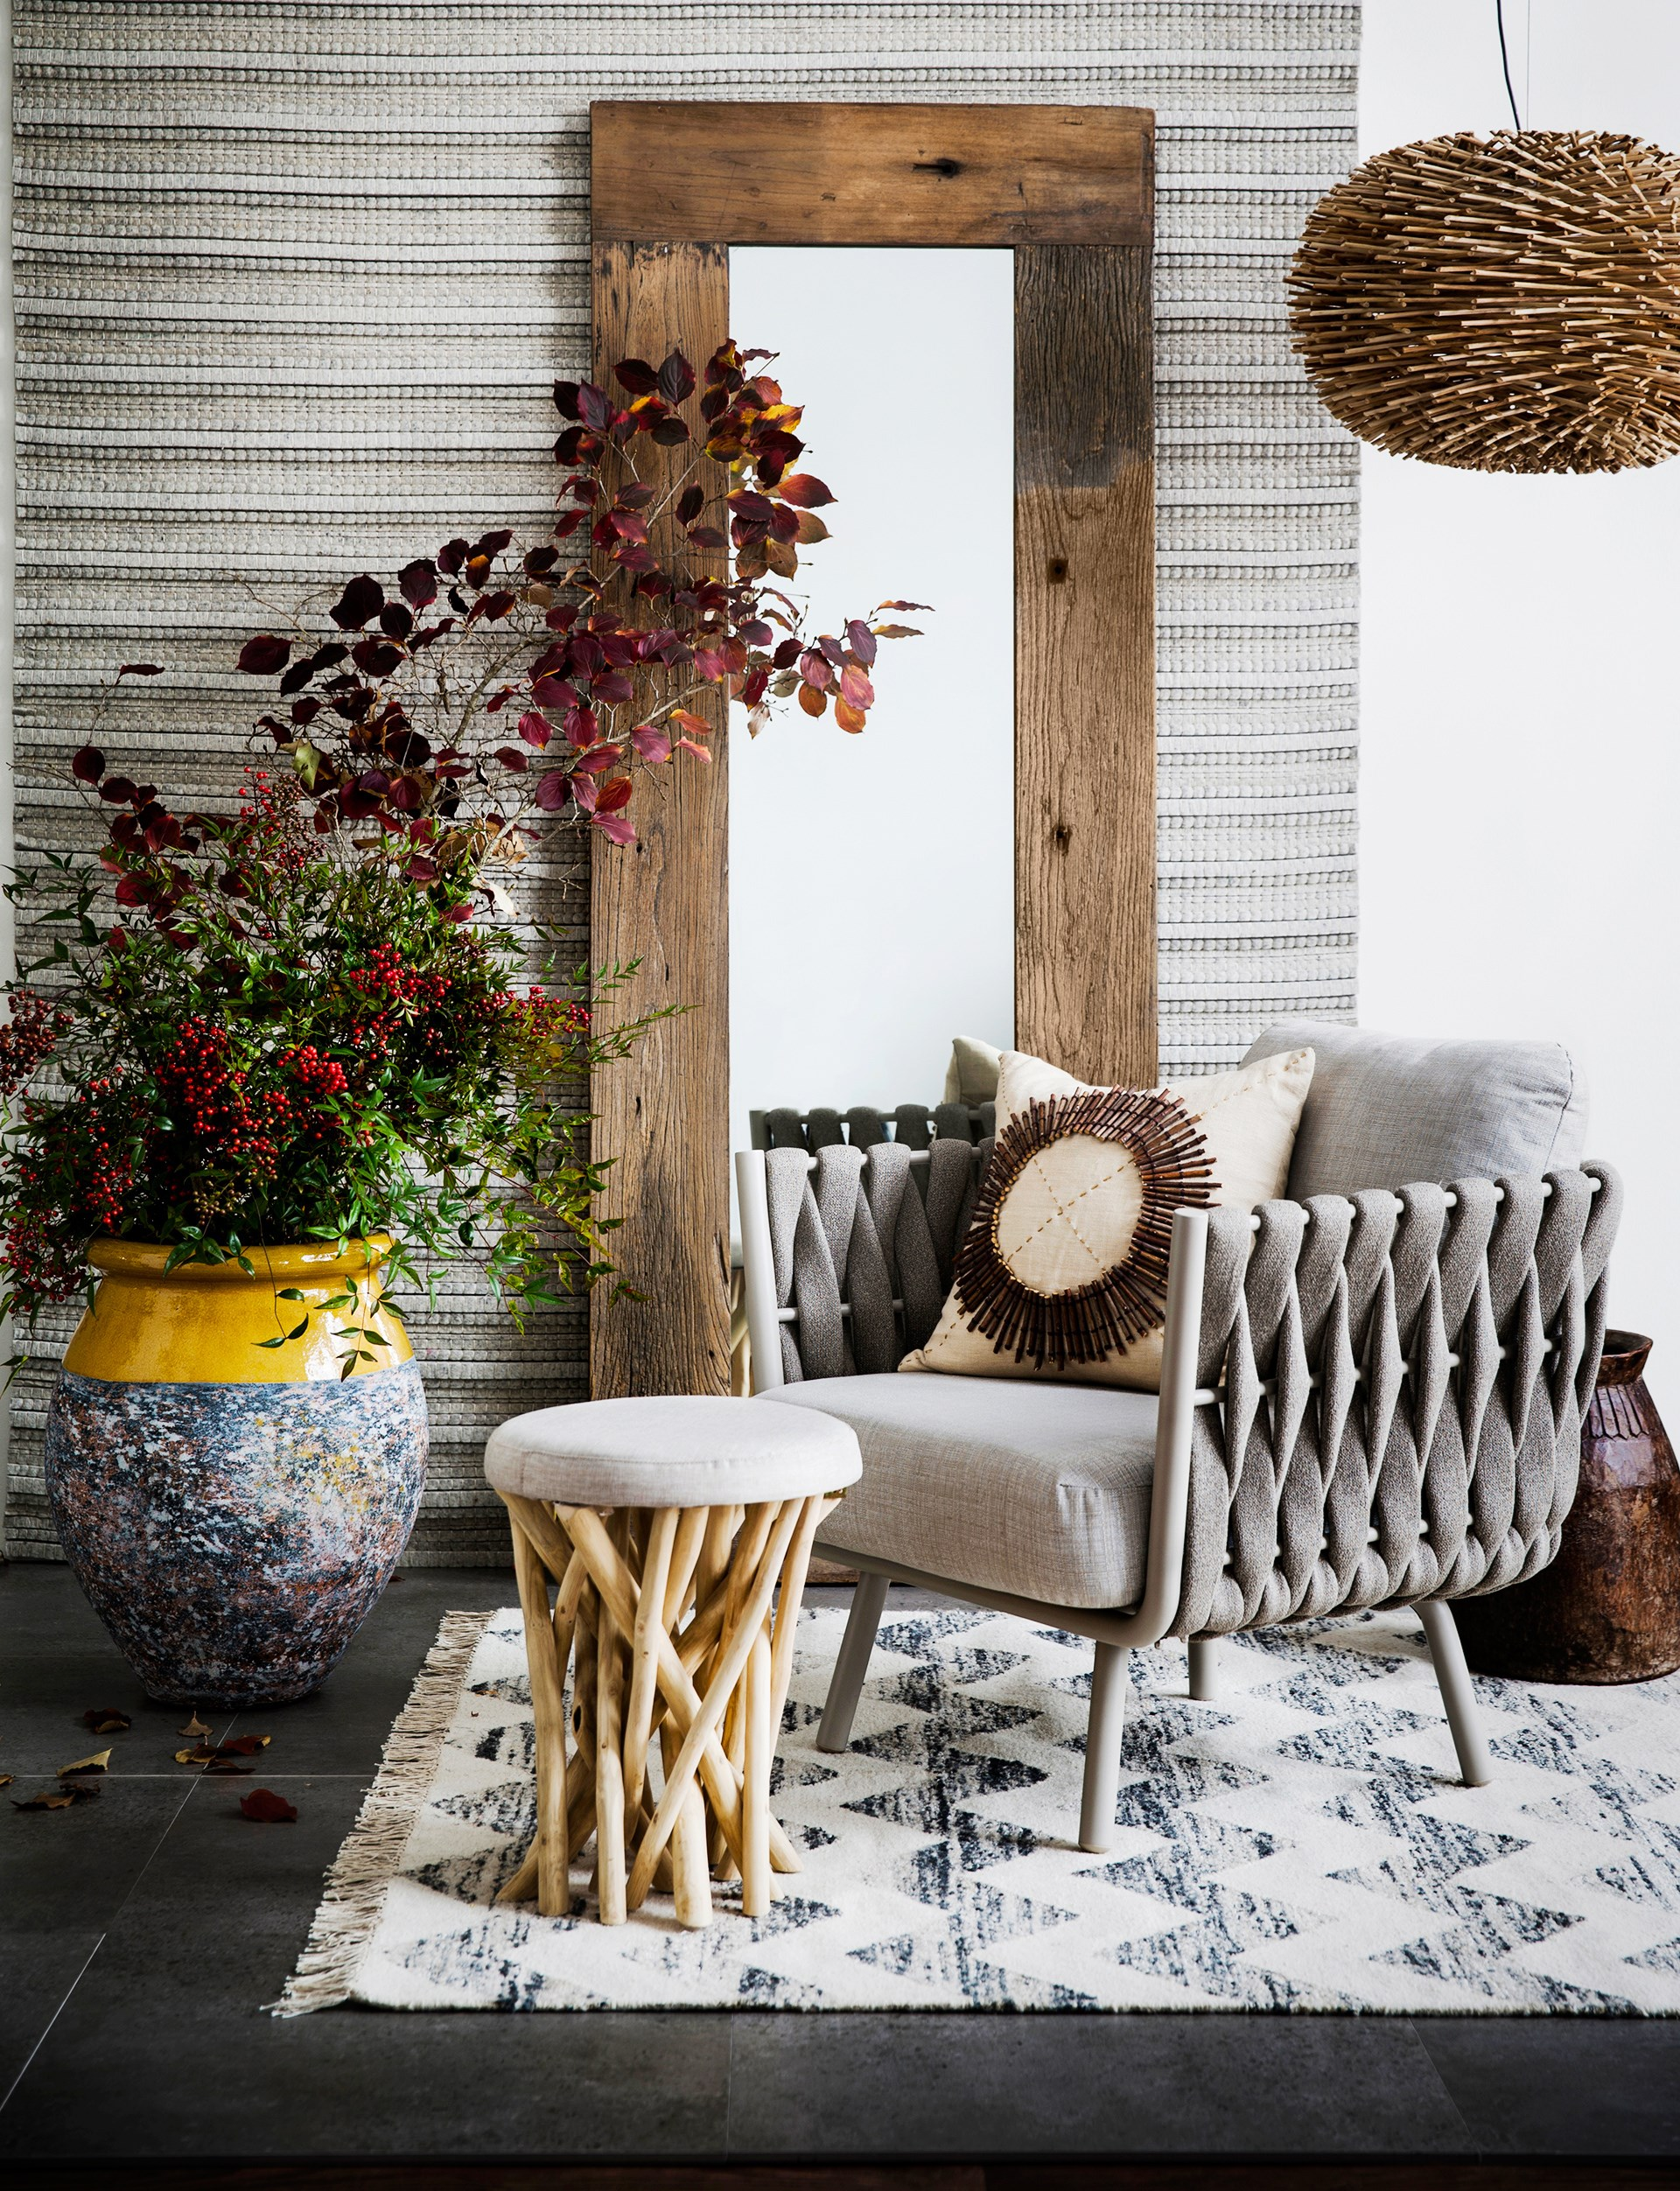 "A rich interior is the sum of its parts. Invest in visually pleasing pieces to build up [textured, enduring style](http://www.homestolove.com.au/mindful-home-decorating-2296|target=""_blank"")."